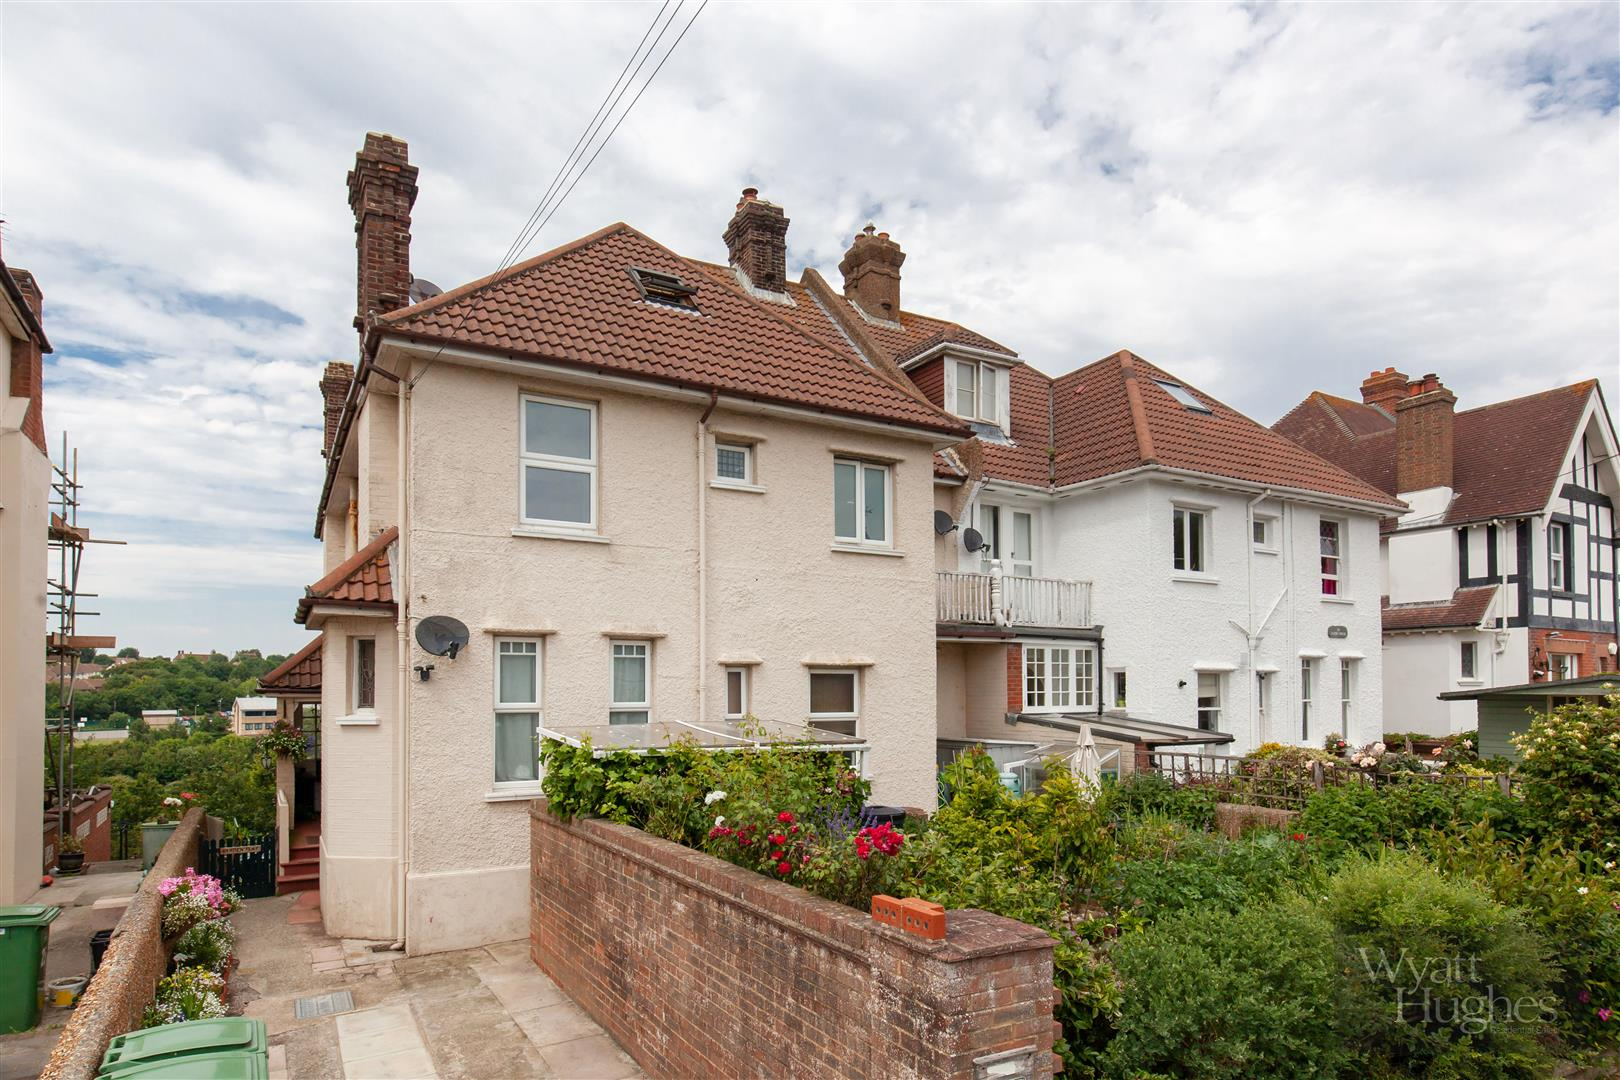 3 bed flat for sale in St. Saviours Road, St. Leonards-On-Sea - Property Image 1